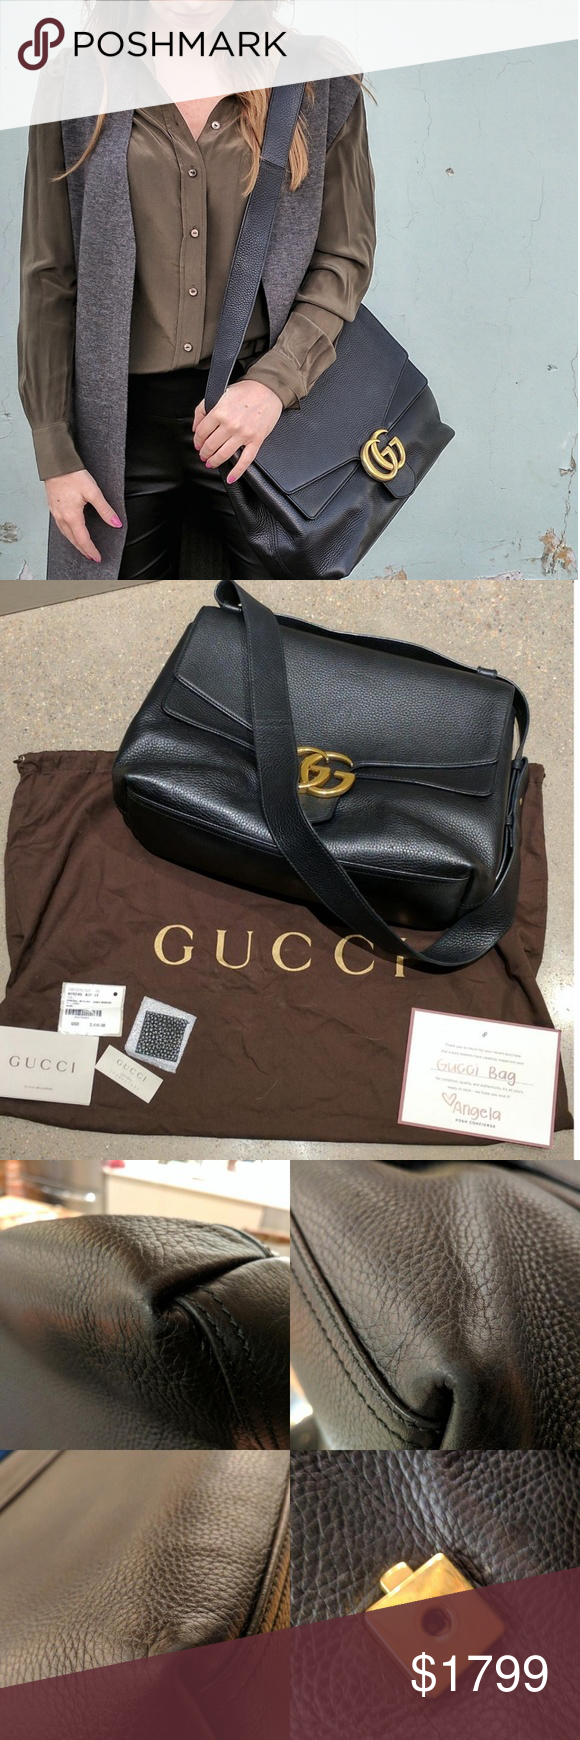 "GUCCI GG MARMONT LEATHER SHOULDER BAG CONDITION  Gently Used  Exterior scuffs or marks  This item has visible signs of wear  DESCRIPTION  100% authentic. comes with authentication card from PM, dust bag, cards. and leather sample. slight scratching on logo, small amount of wear on corners - see pictures for more detail.  Contact Seller  DETAILS  Type:  Shoulder Bags  Measurements:  13""L x 10""H x 5.5""W  Color:  Black  Brand:  Gucci  Fabric:  Leather  Style/Collection:  GUCCI GG MARMONT…"